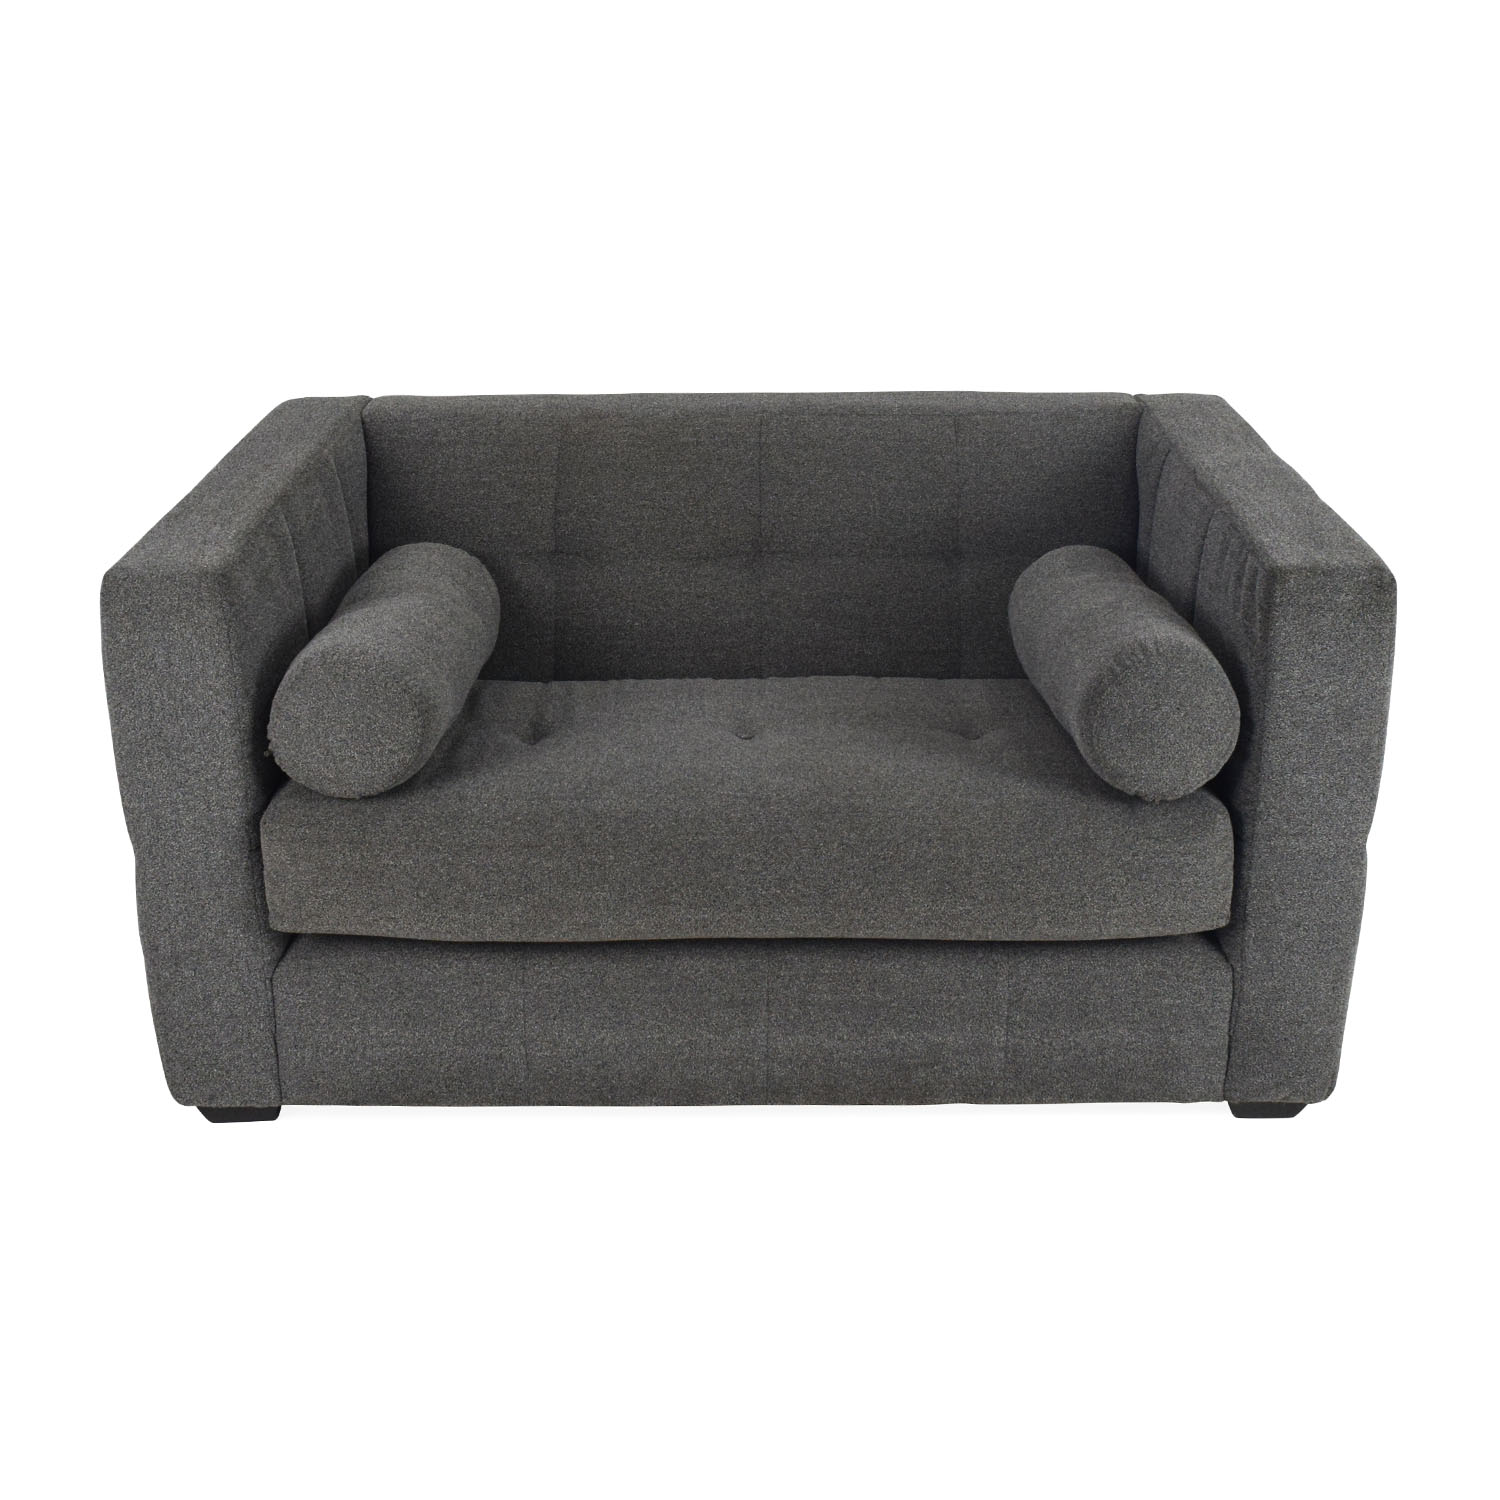 Decor NYC Boucle Loveseat / Sofas